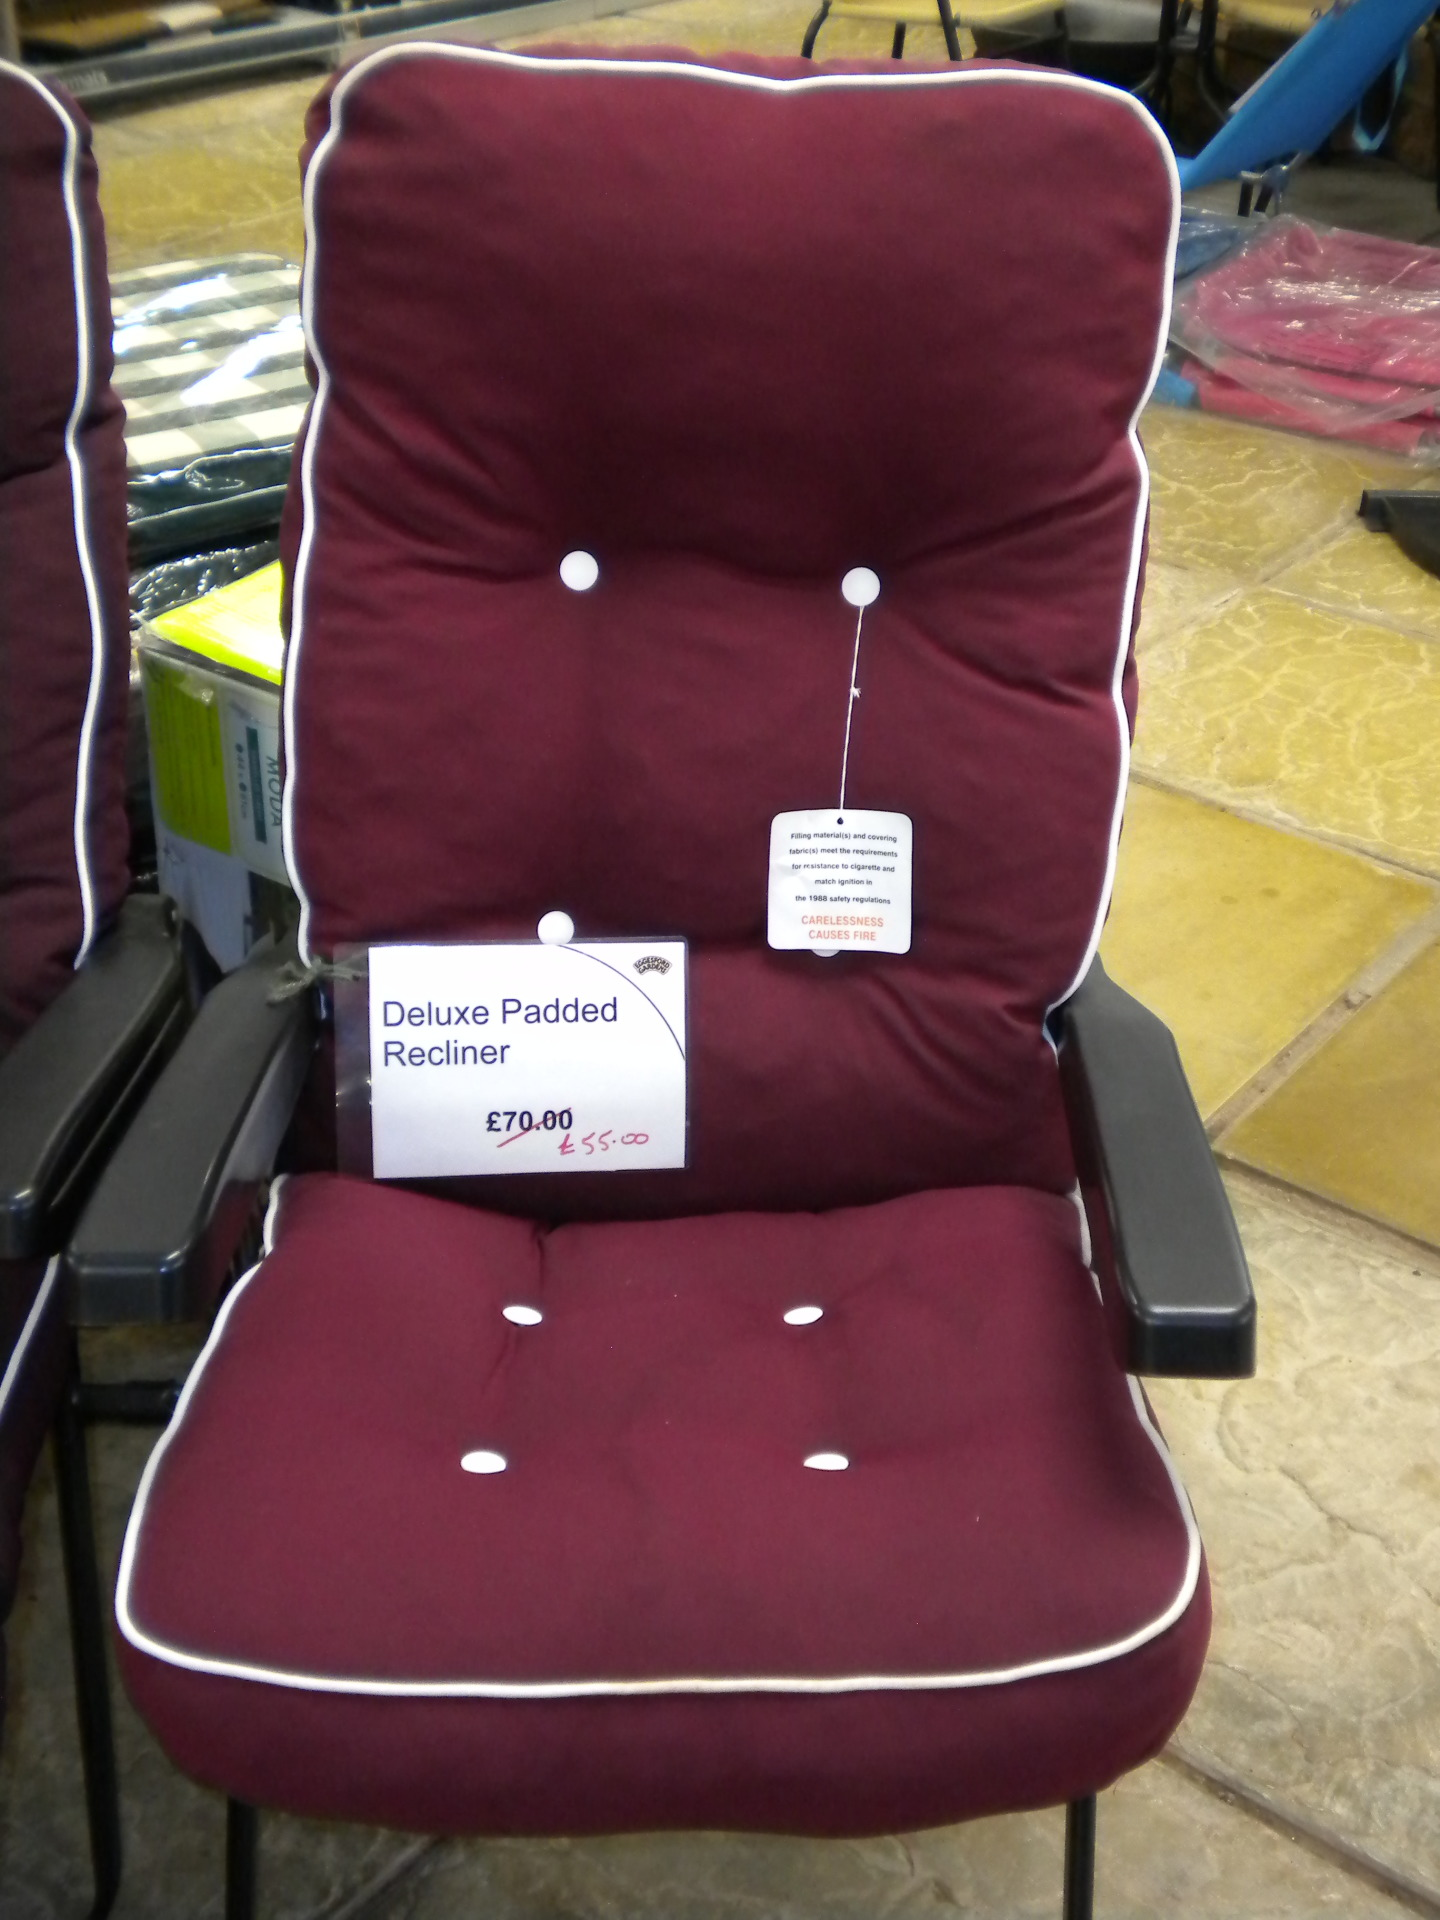 Deluxe padded recliners and relaxers - great discounts